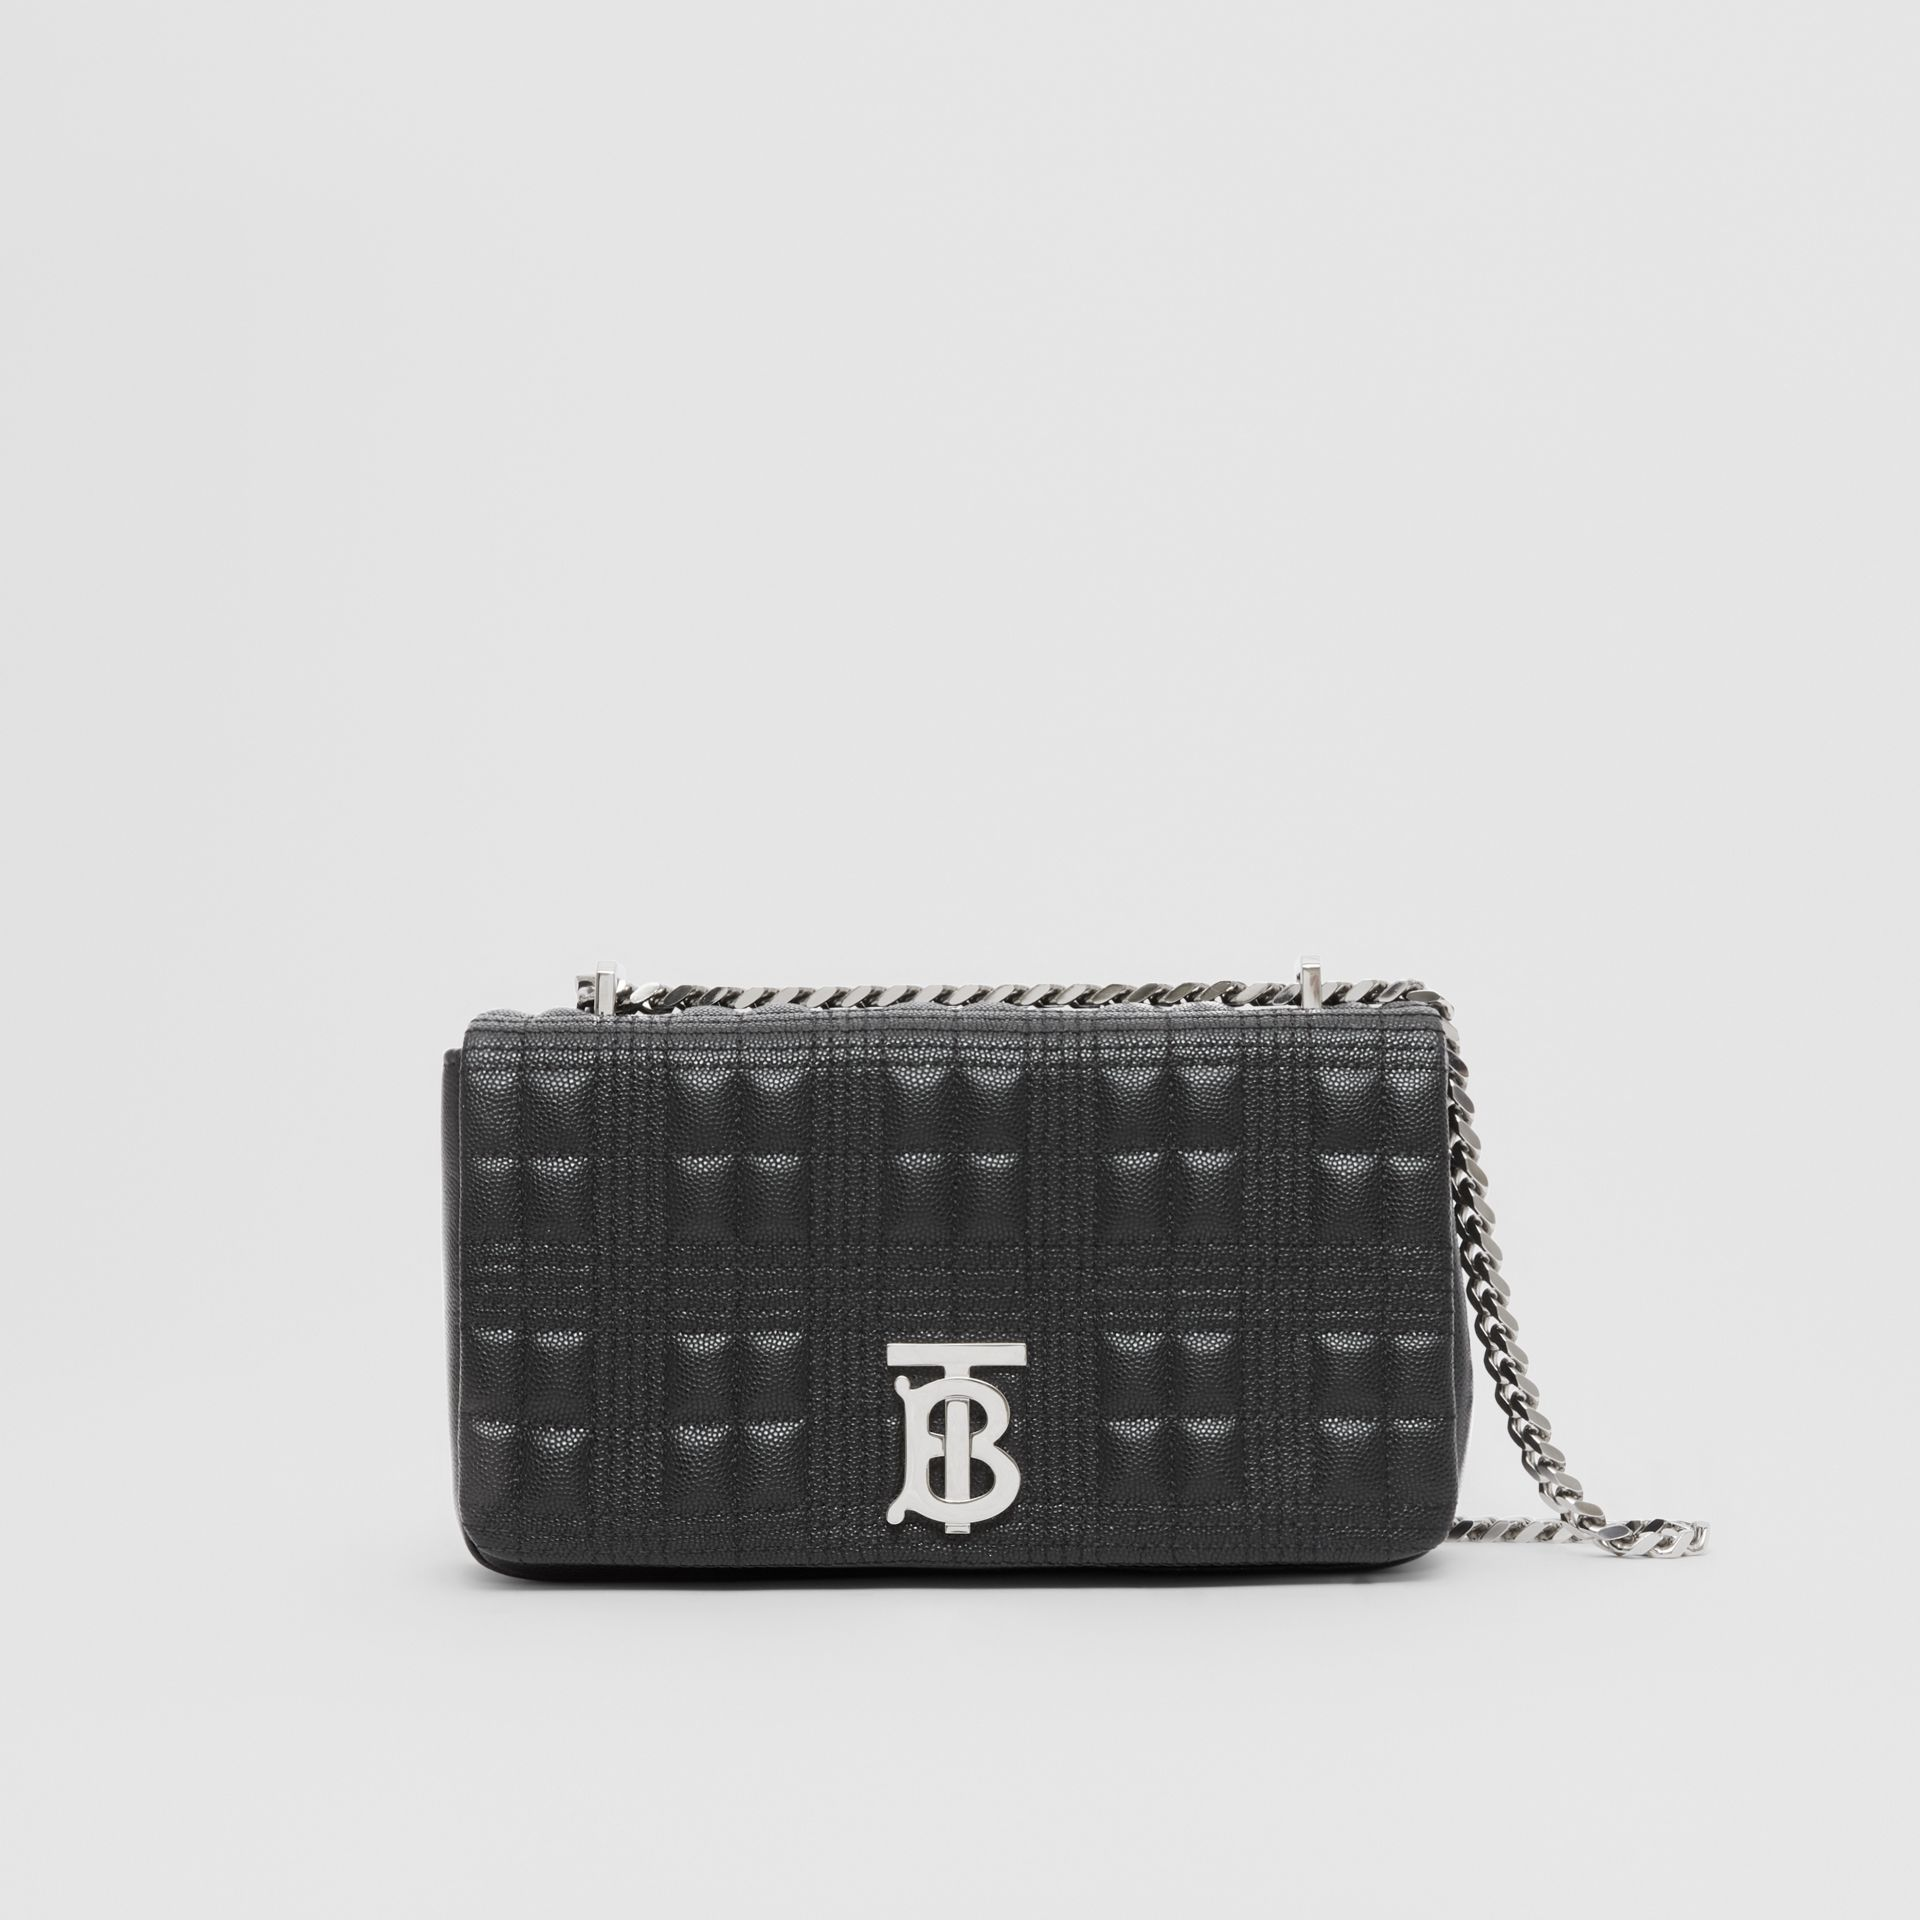 Small Quilted Grainy Leather Lola Bag in Black/palladium | Burberry United Kingdom - gallery image 12